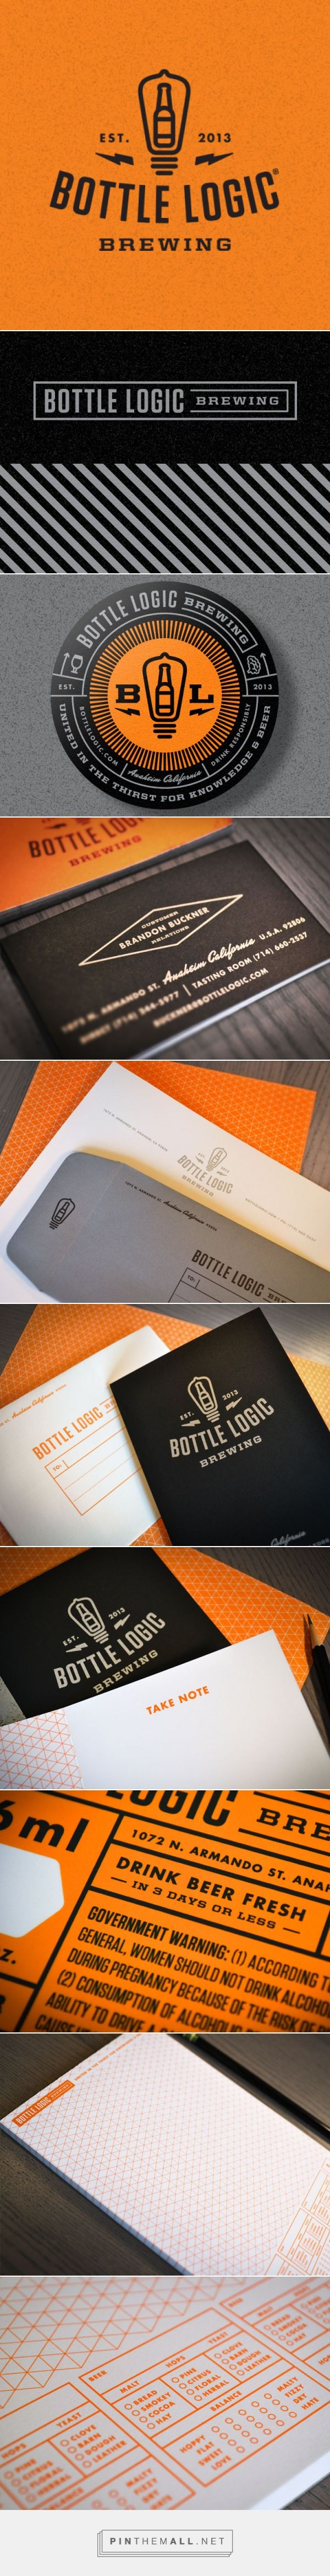 Bottle Logic Identity | Oh Beautiful Beer - created via http://pinthemall.net